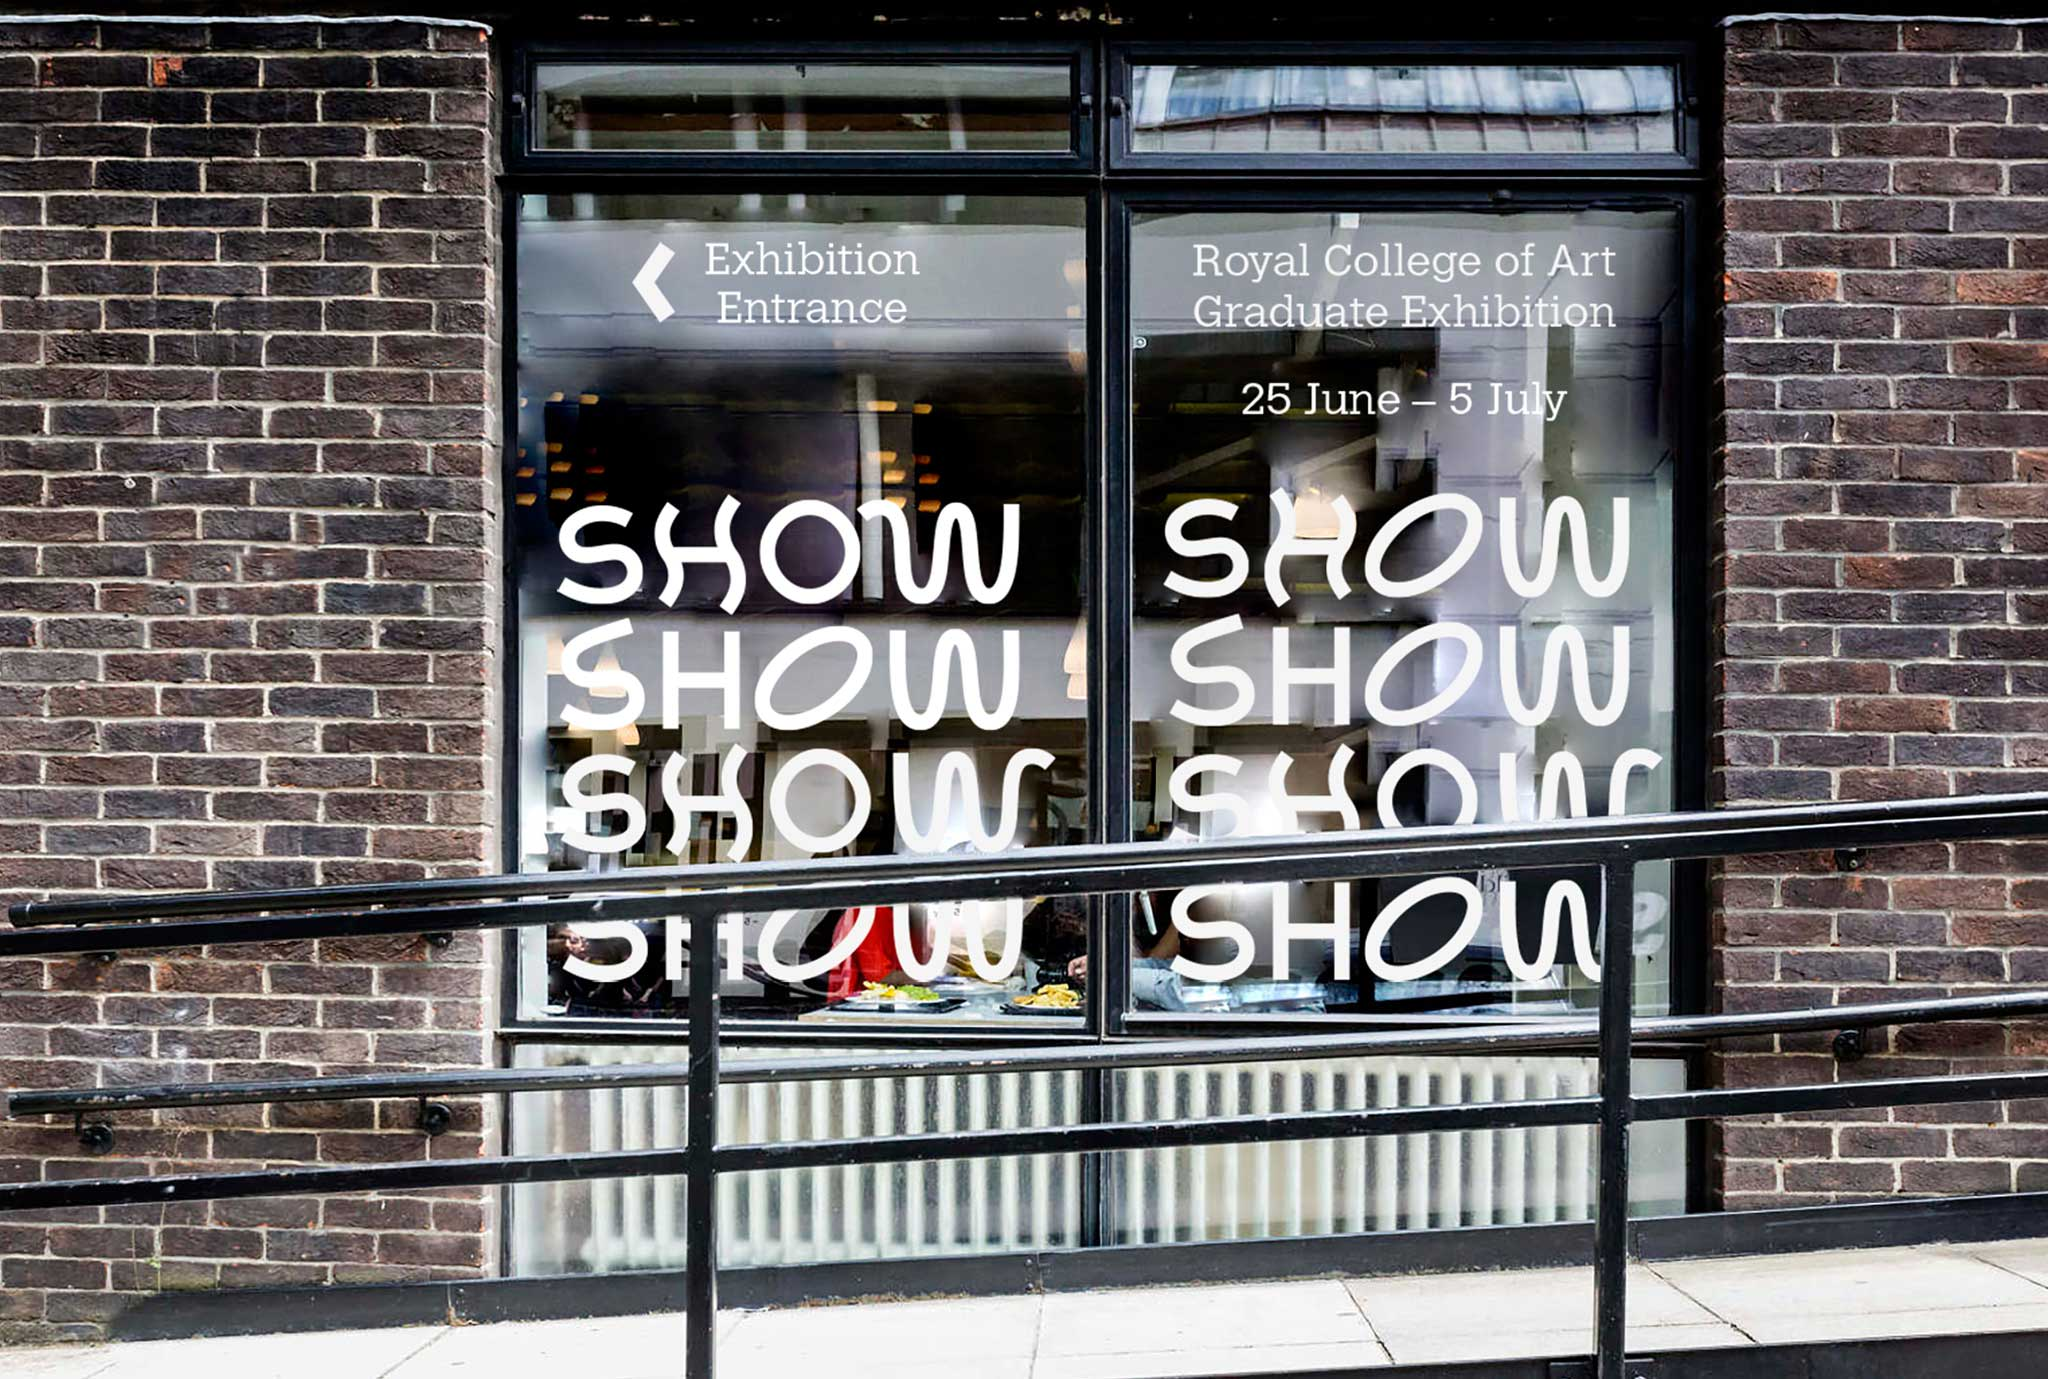 Royal College of Art show 2016 vinyl window